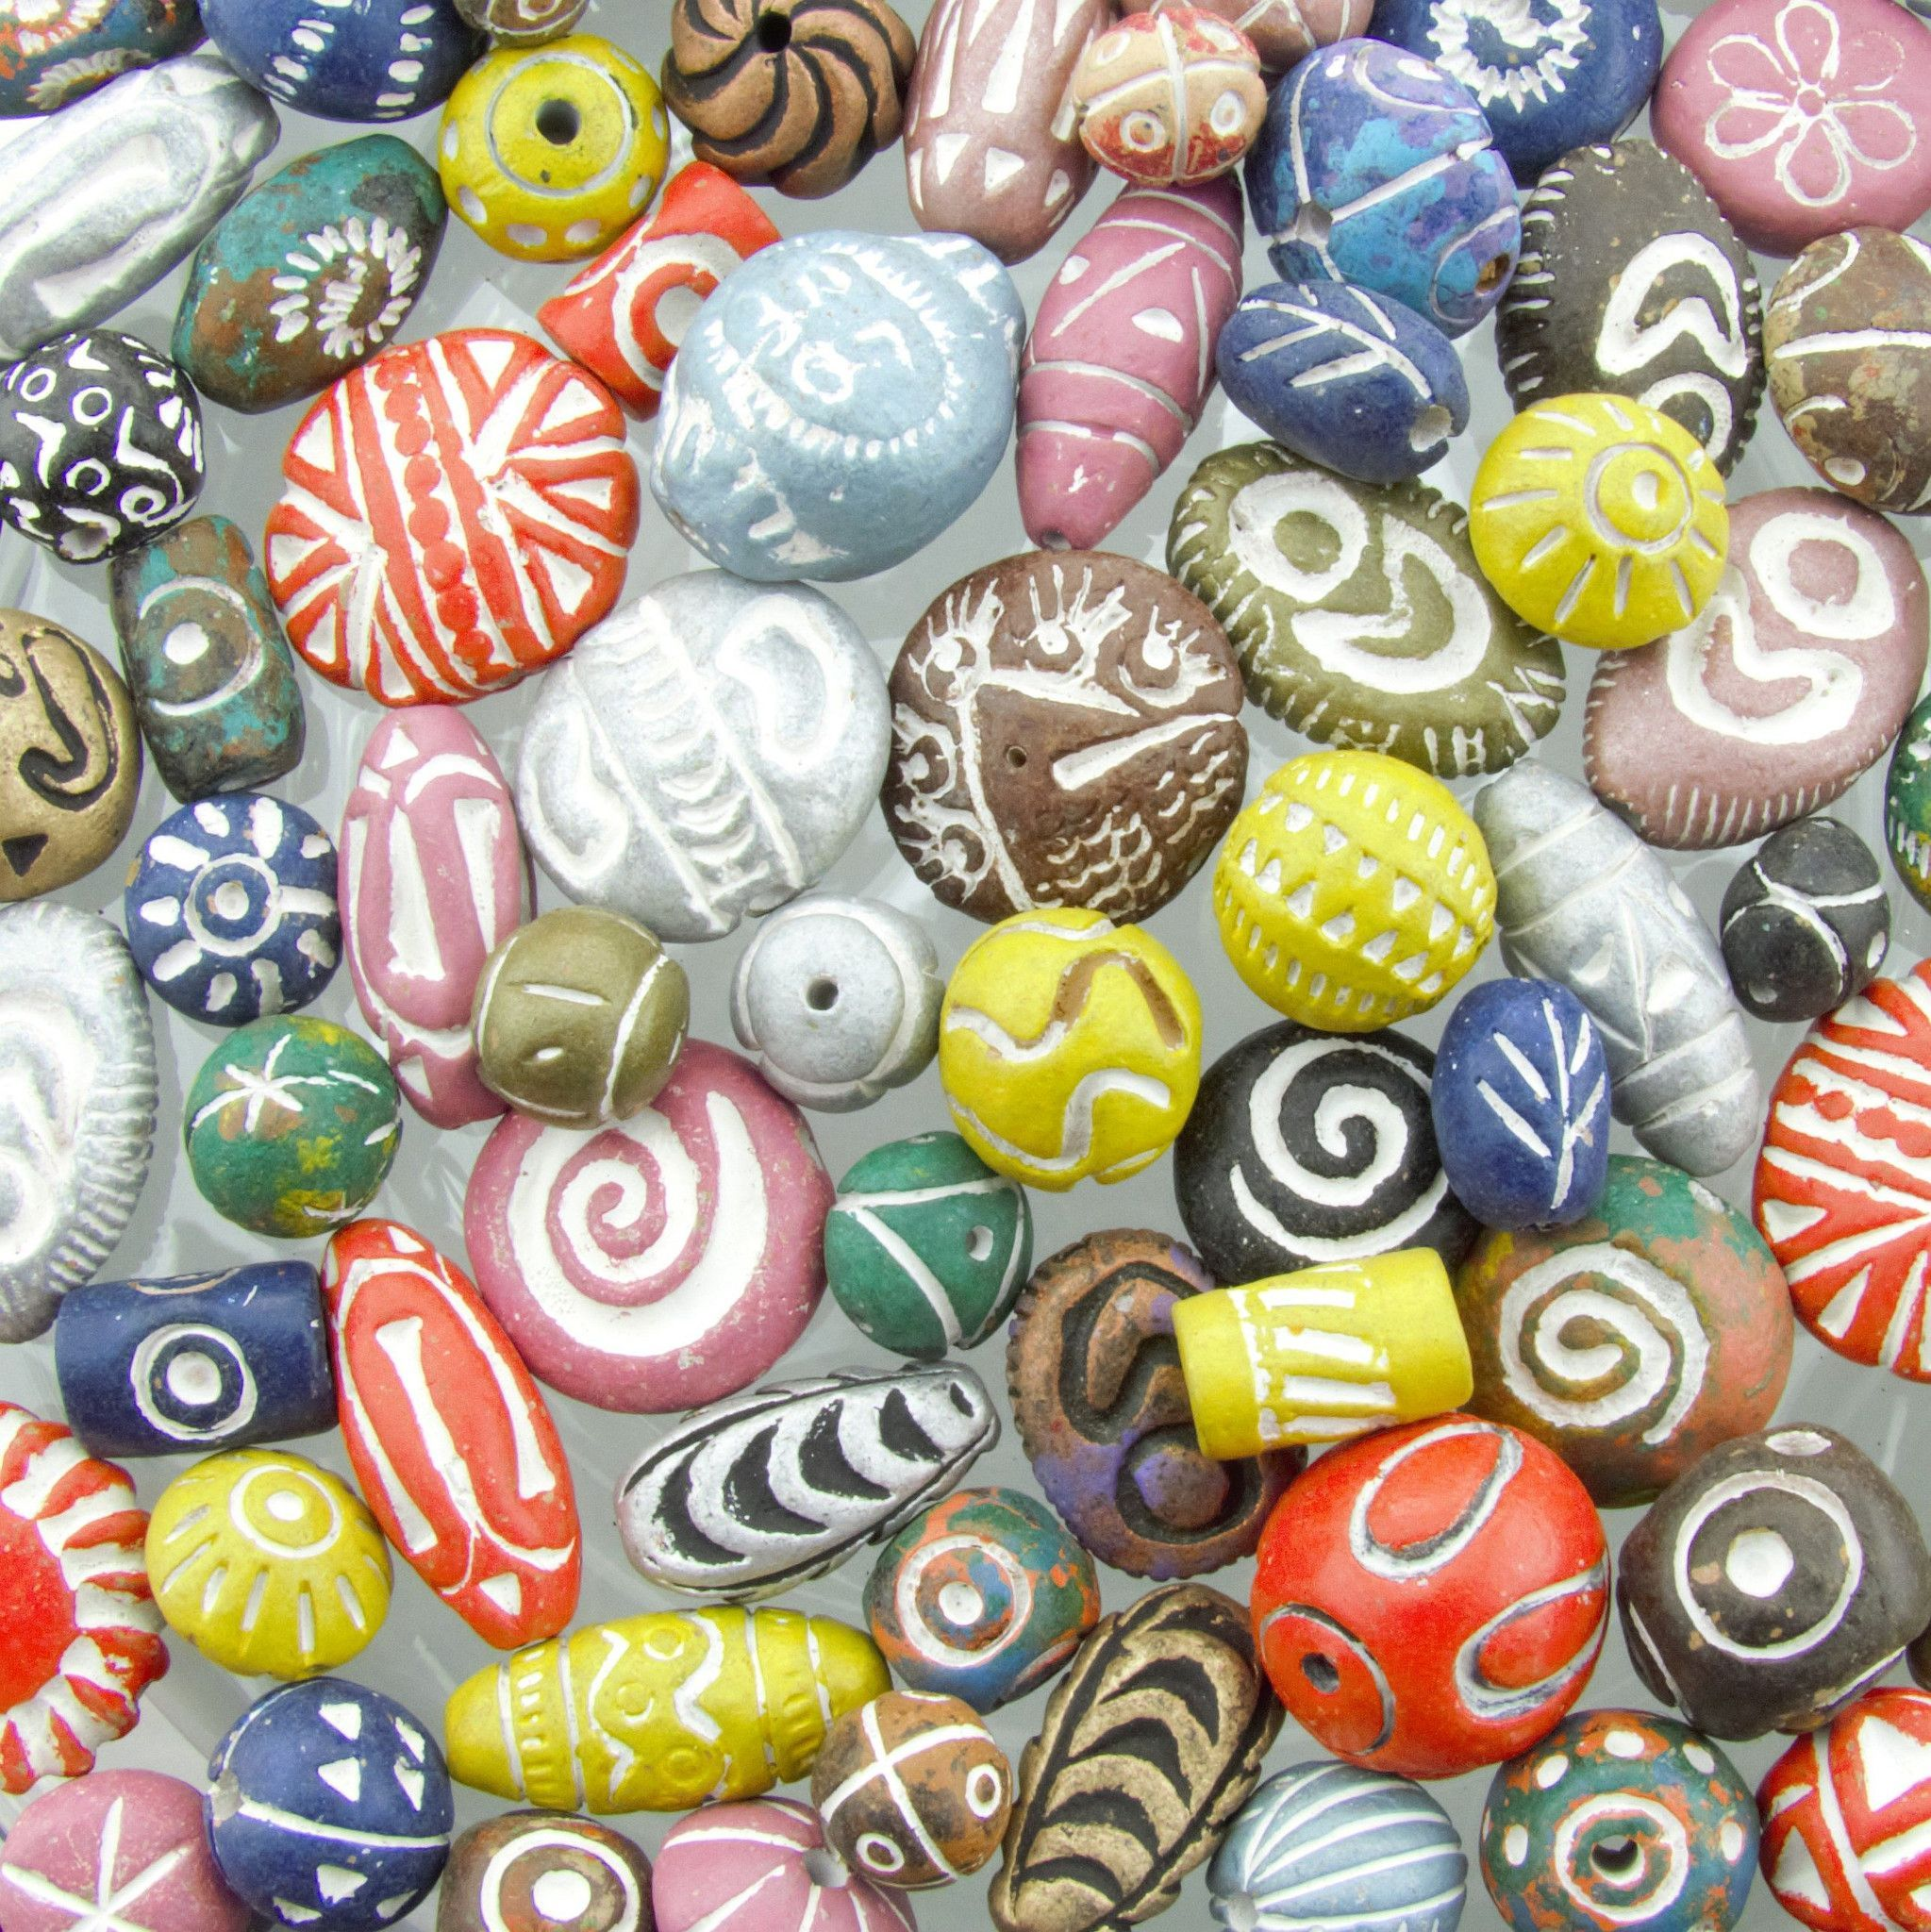 28mm to 8mm (2mm Hole) Assorted Shapes and Sizes Color Mixed Clay Beads - 100 Grams (AS5)